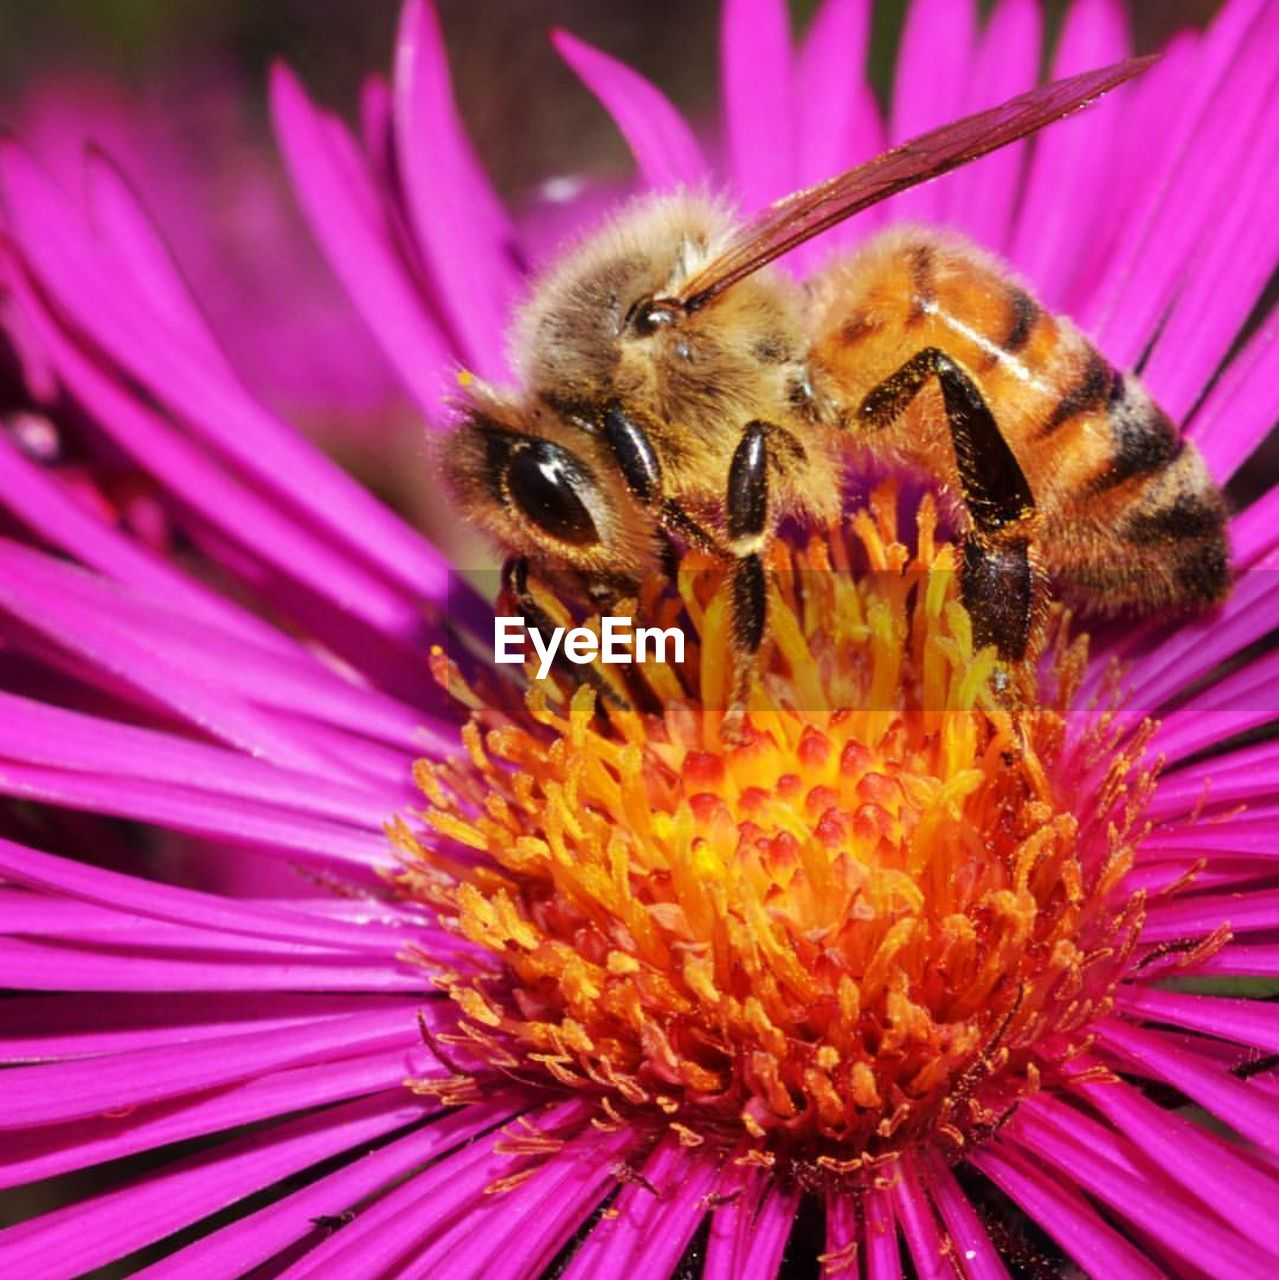 flower, petal, one animal, insect, animal themes, purple, fragility, flower head, beauty in nature, nature, animals in the wild, freshness, pollen, pollination, growth, close-up, no people, plant, bee, animal wildlife, pink color, outdoors, day, bumblebee, blooming, eastern purple coneflower